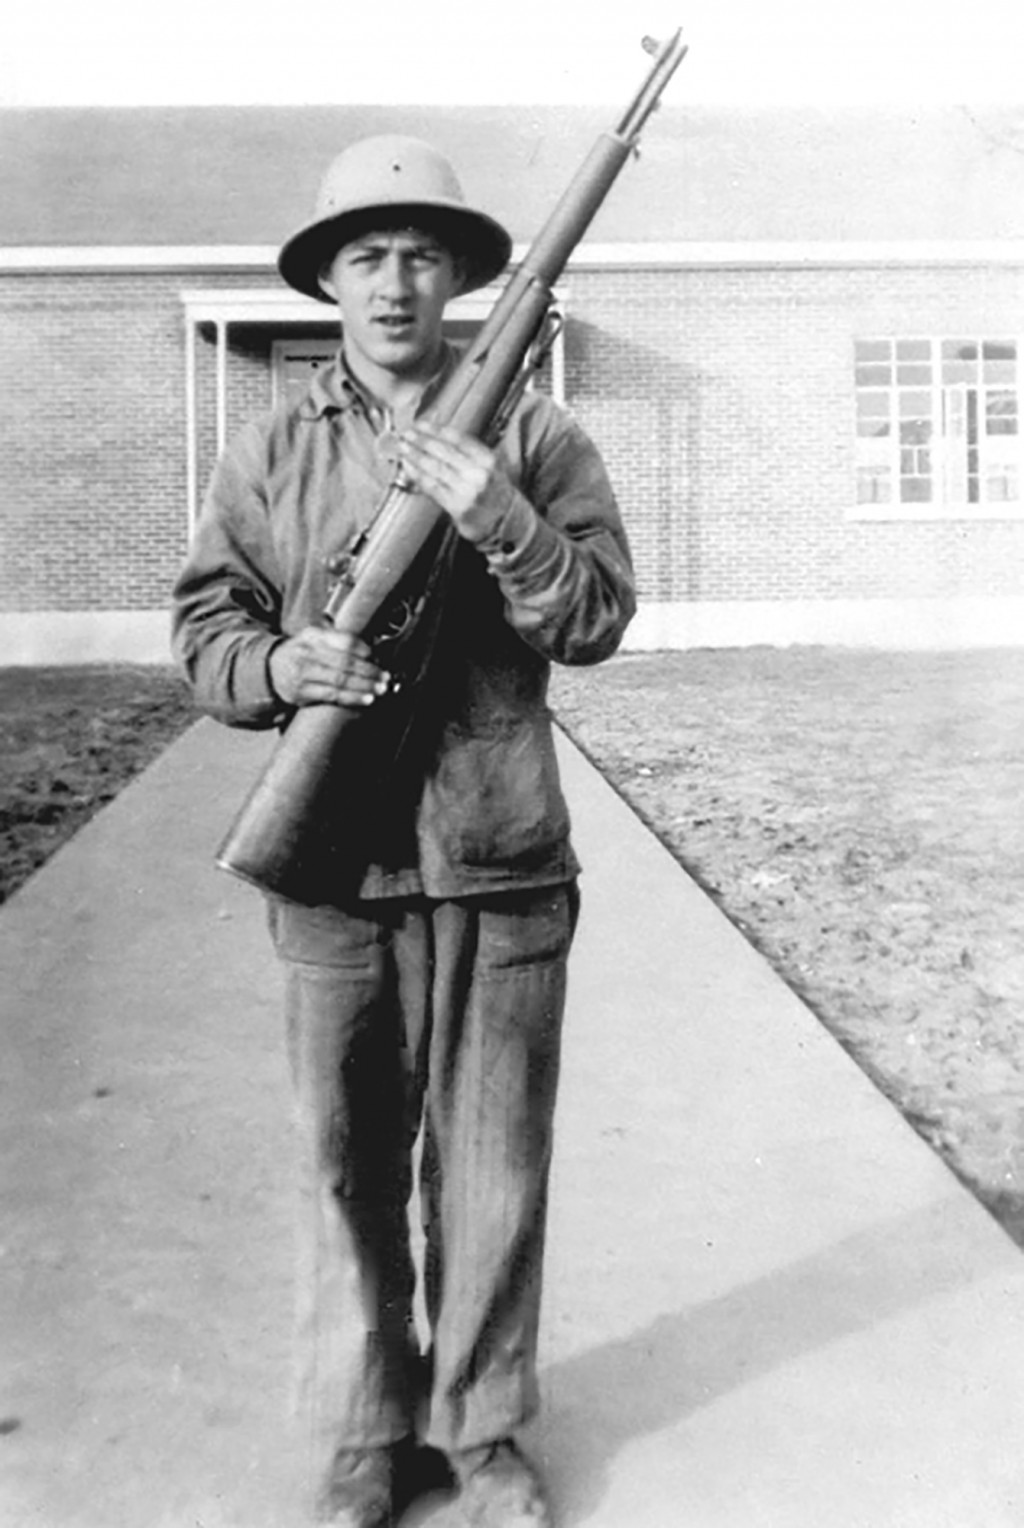 In this early 1940s photo provided by the United States Marine Corps, Emil Ragucci poses with a rifle. Decades after his death in the World War II Bat...